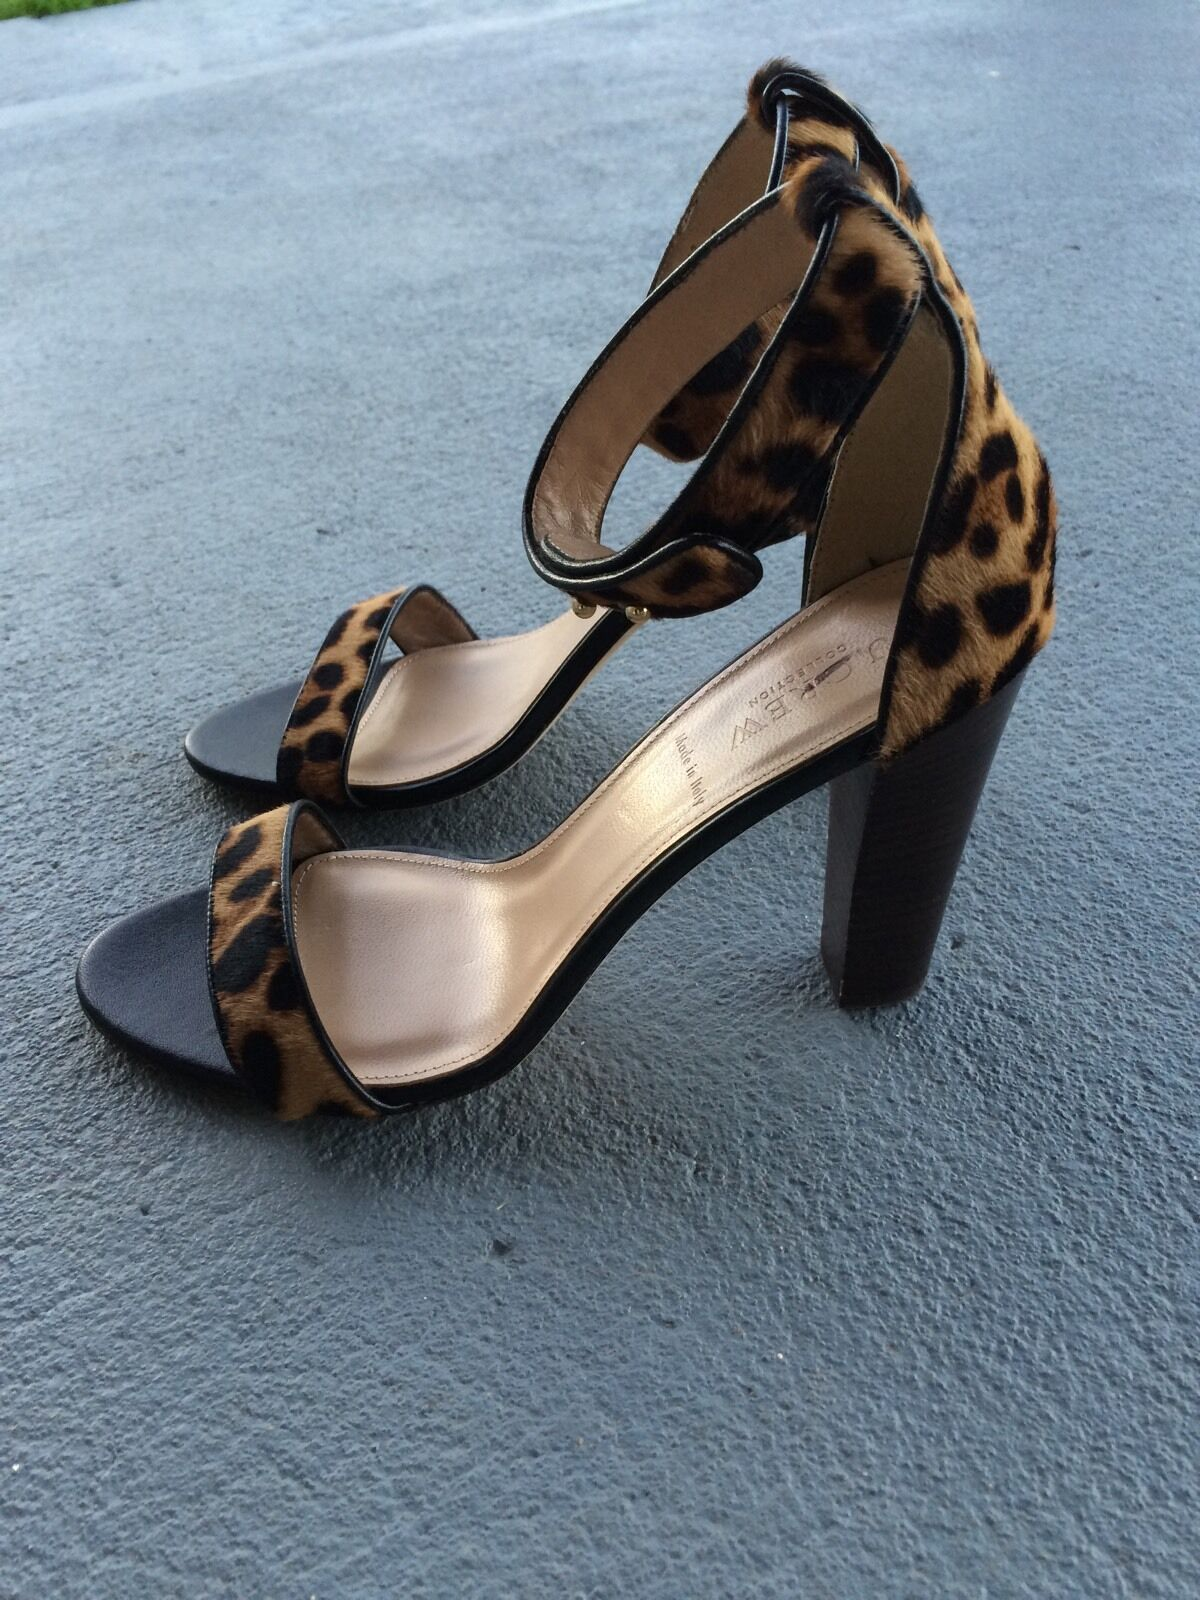 J CREW COLLECTION Lanie Calf-Hair Stacked Heel Heel Heel Sandale Größe 9 325 Leopard #A0512 5b1dc9